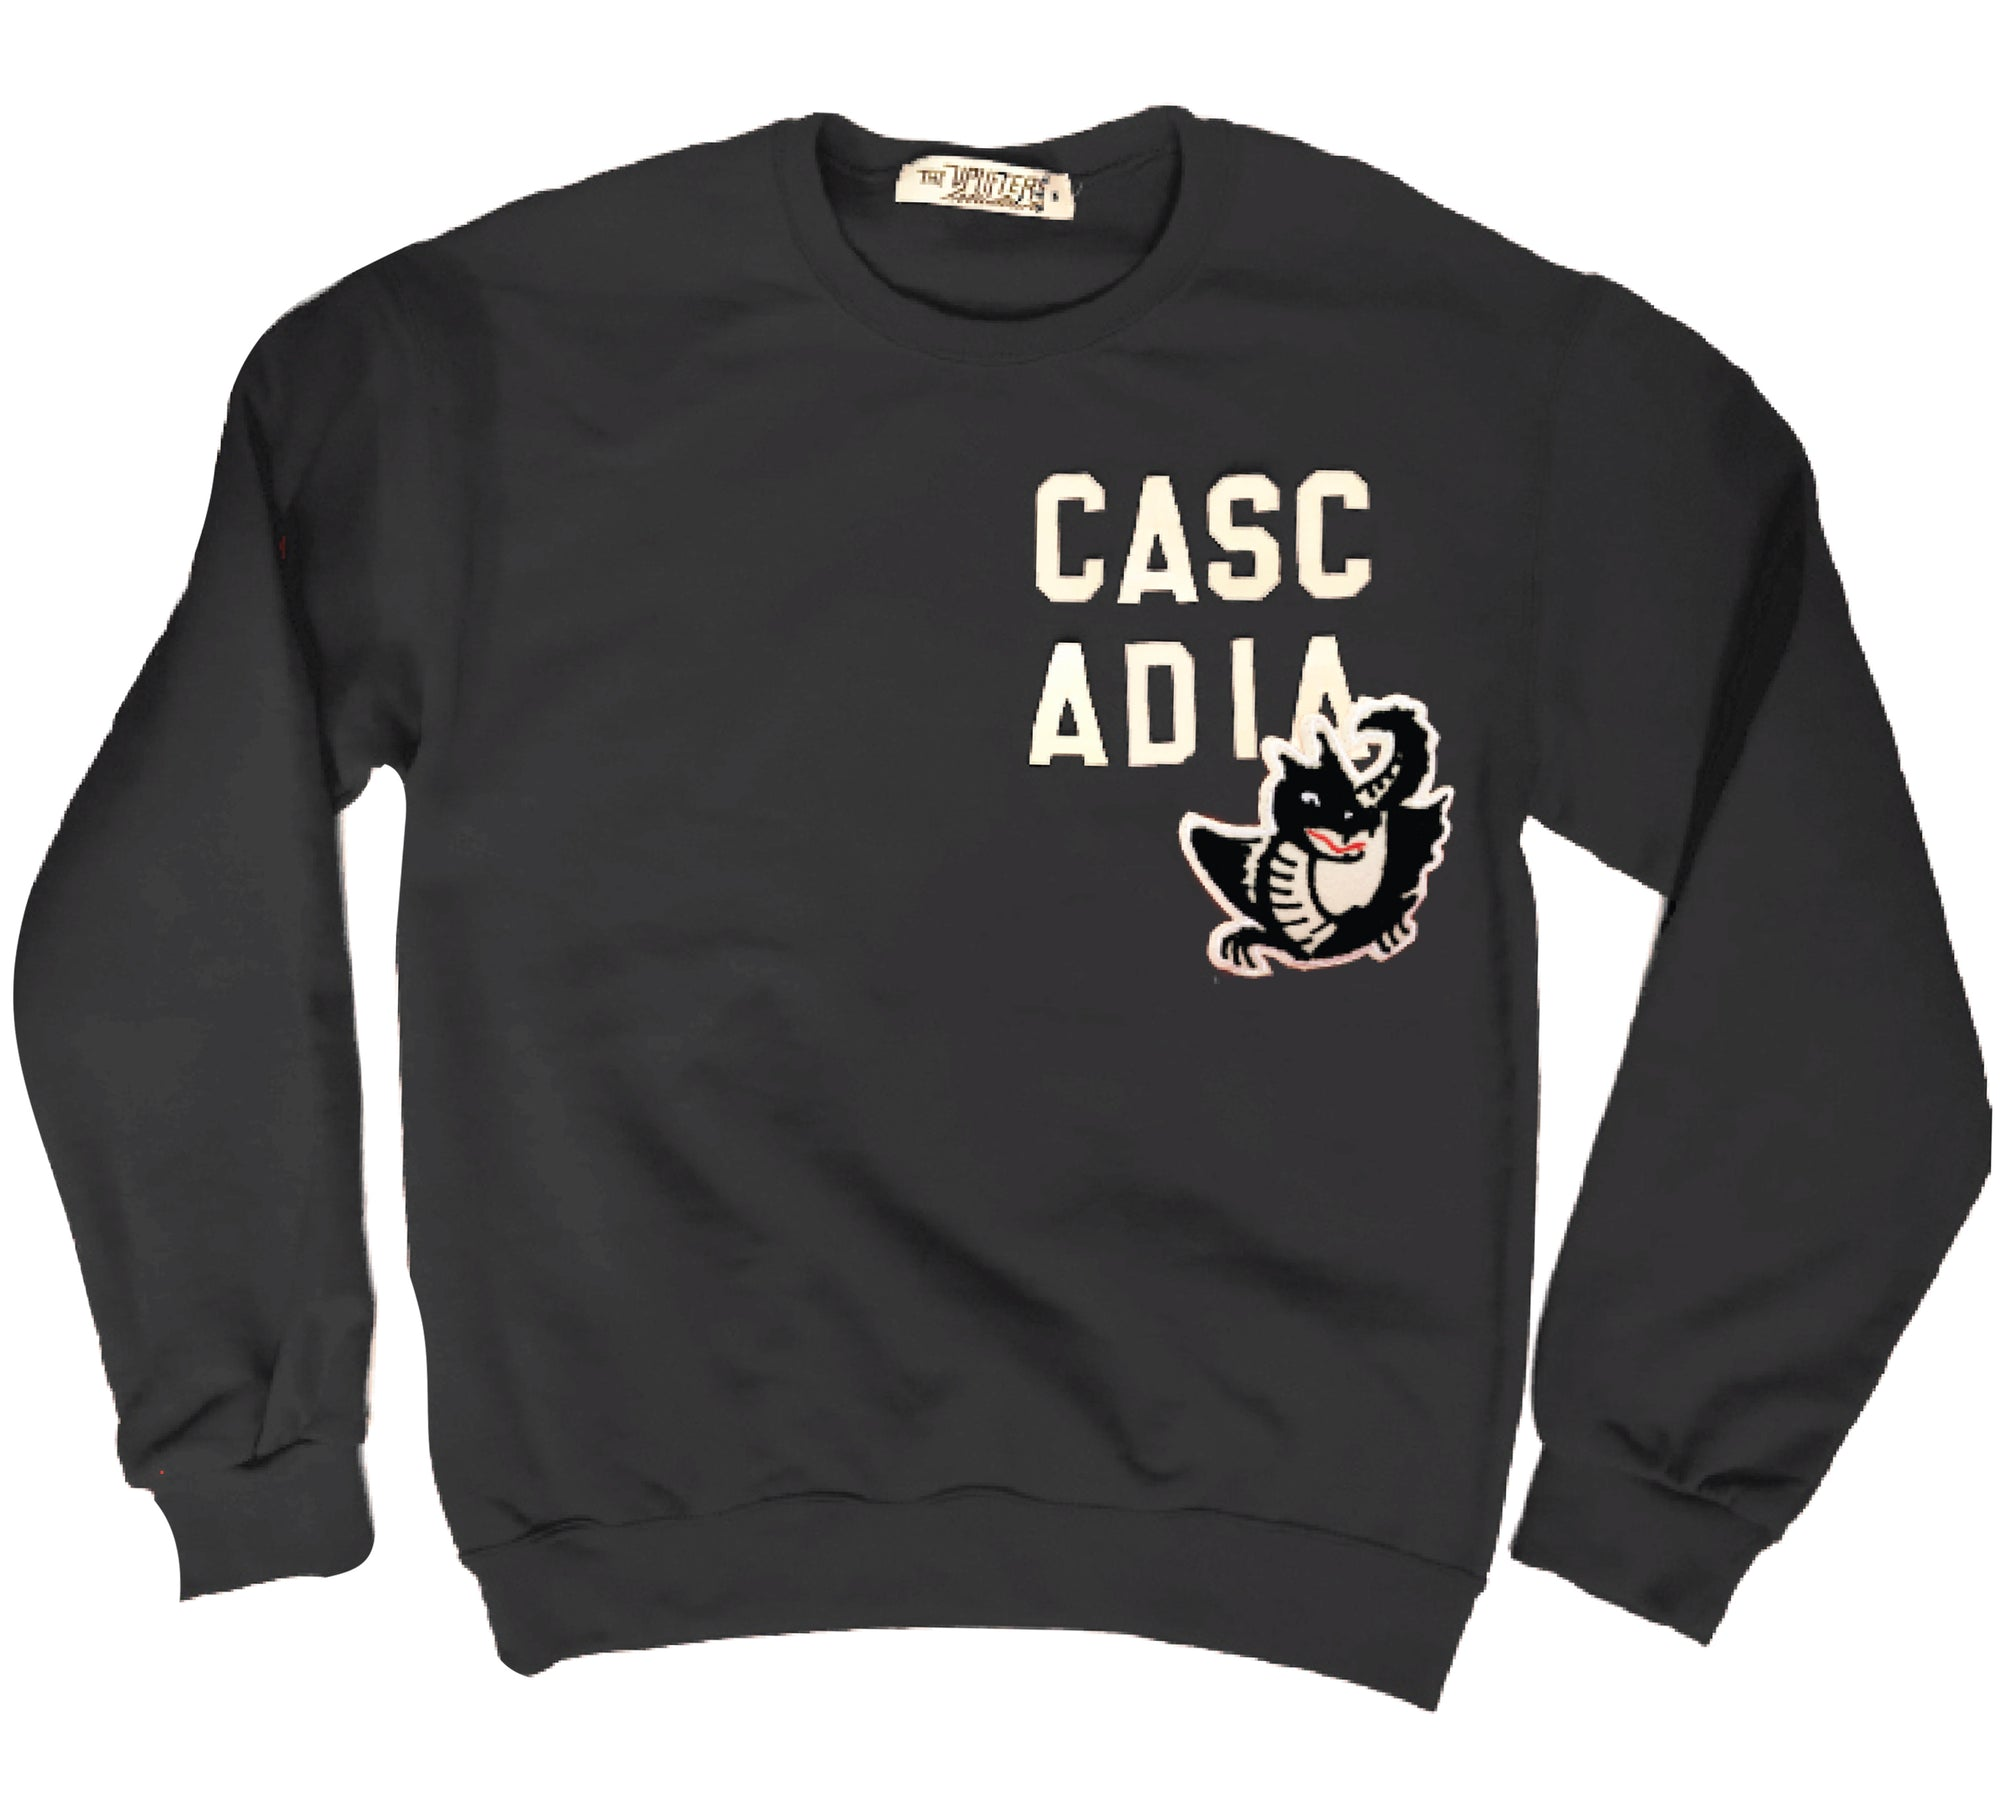 Cascadia Vintaged Pullover Sweatshirt - Youth